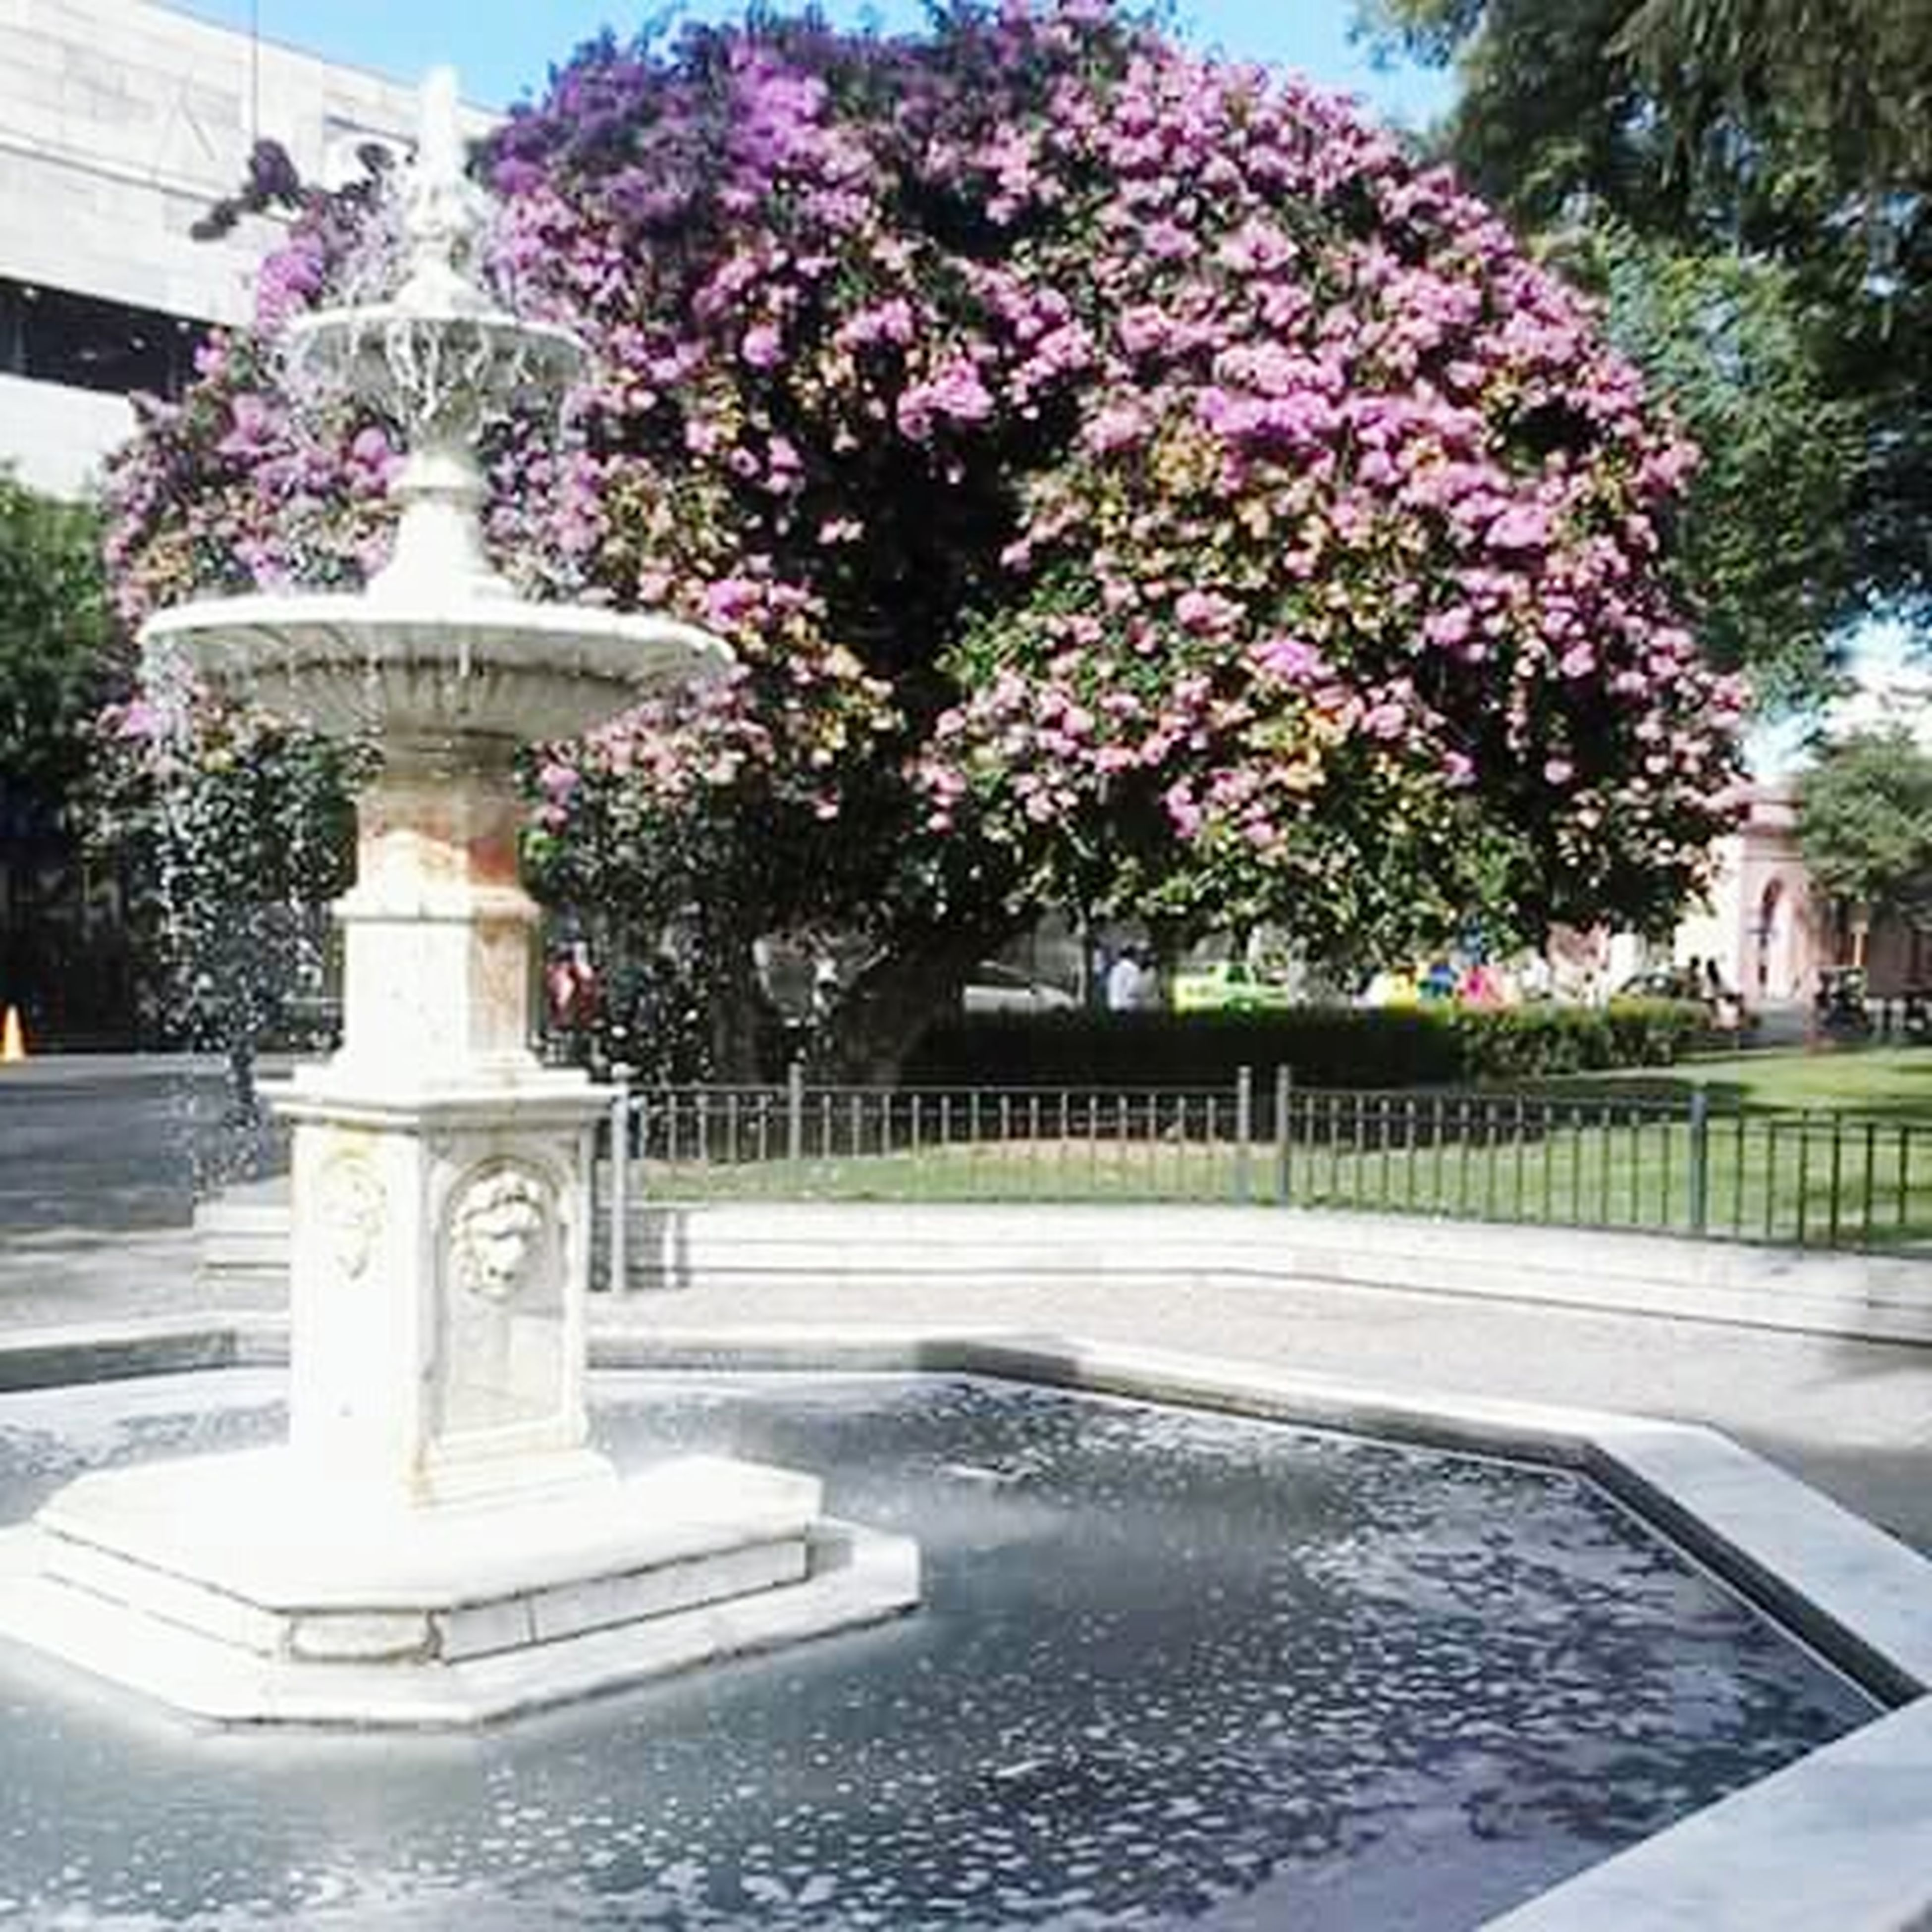 tree, flower, built structure, architecture, building exterior, growth, park - man made space, day, formal garden, plant, incidental people, outdoors, city, nature, water, sunlight, freshness, no people, fountain, street